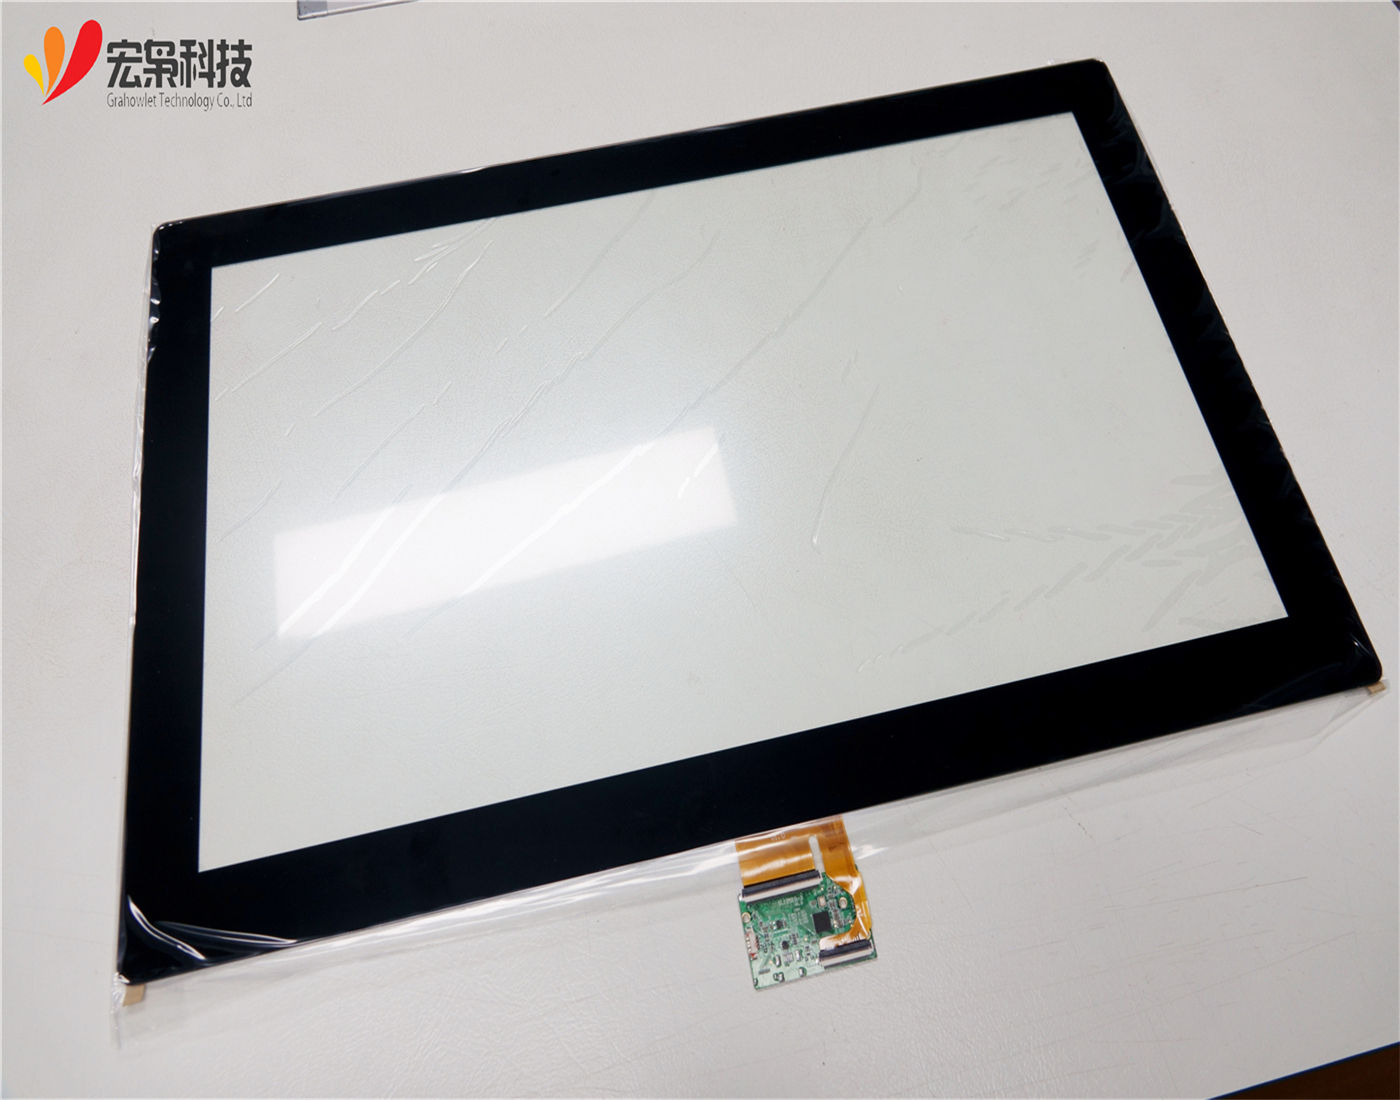 Custom size PCAP touch 21.5, 236, 23.8, 24,27, 30,32 Inch capacitive touch screen panel 와 USB controller